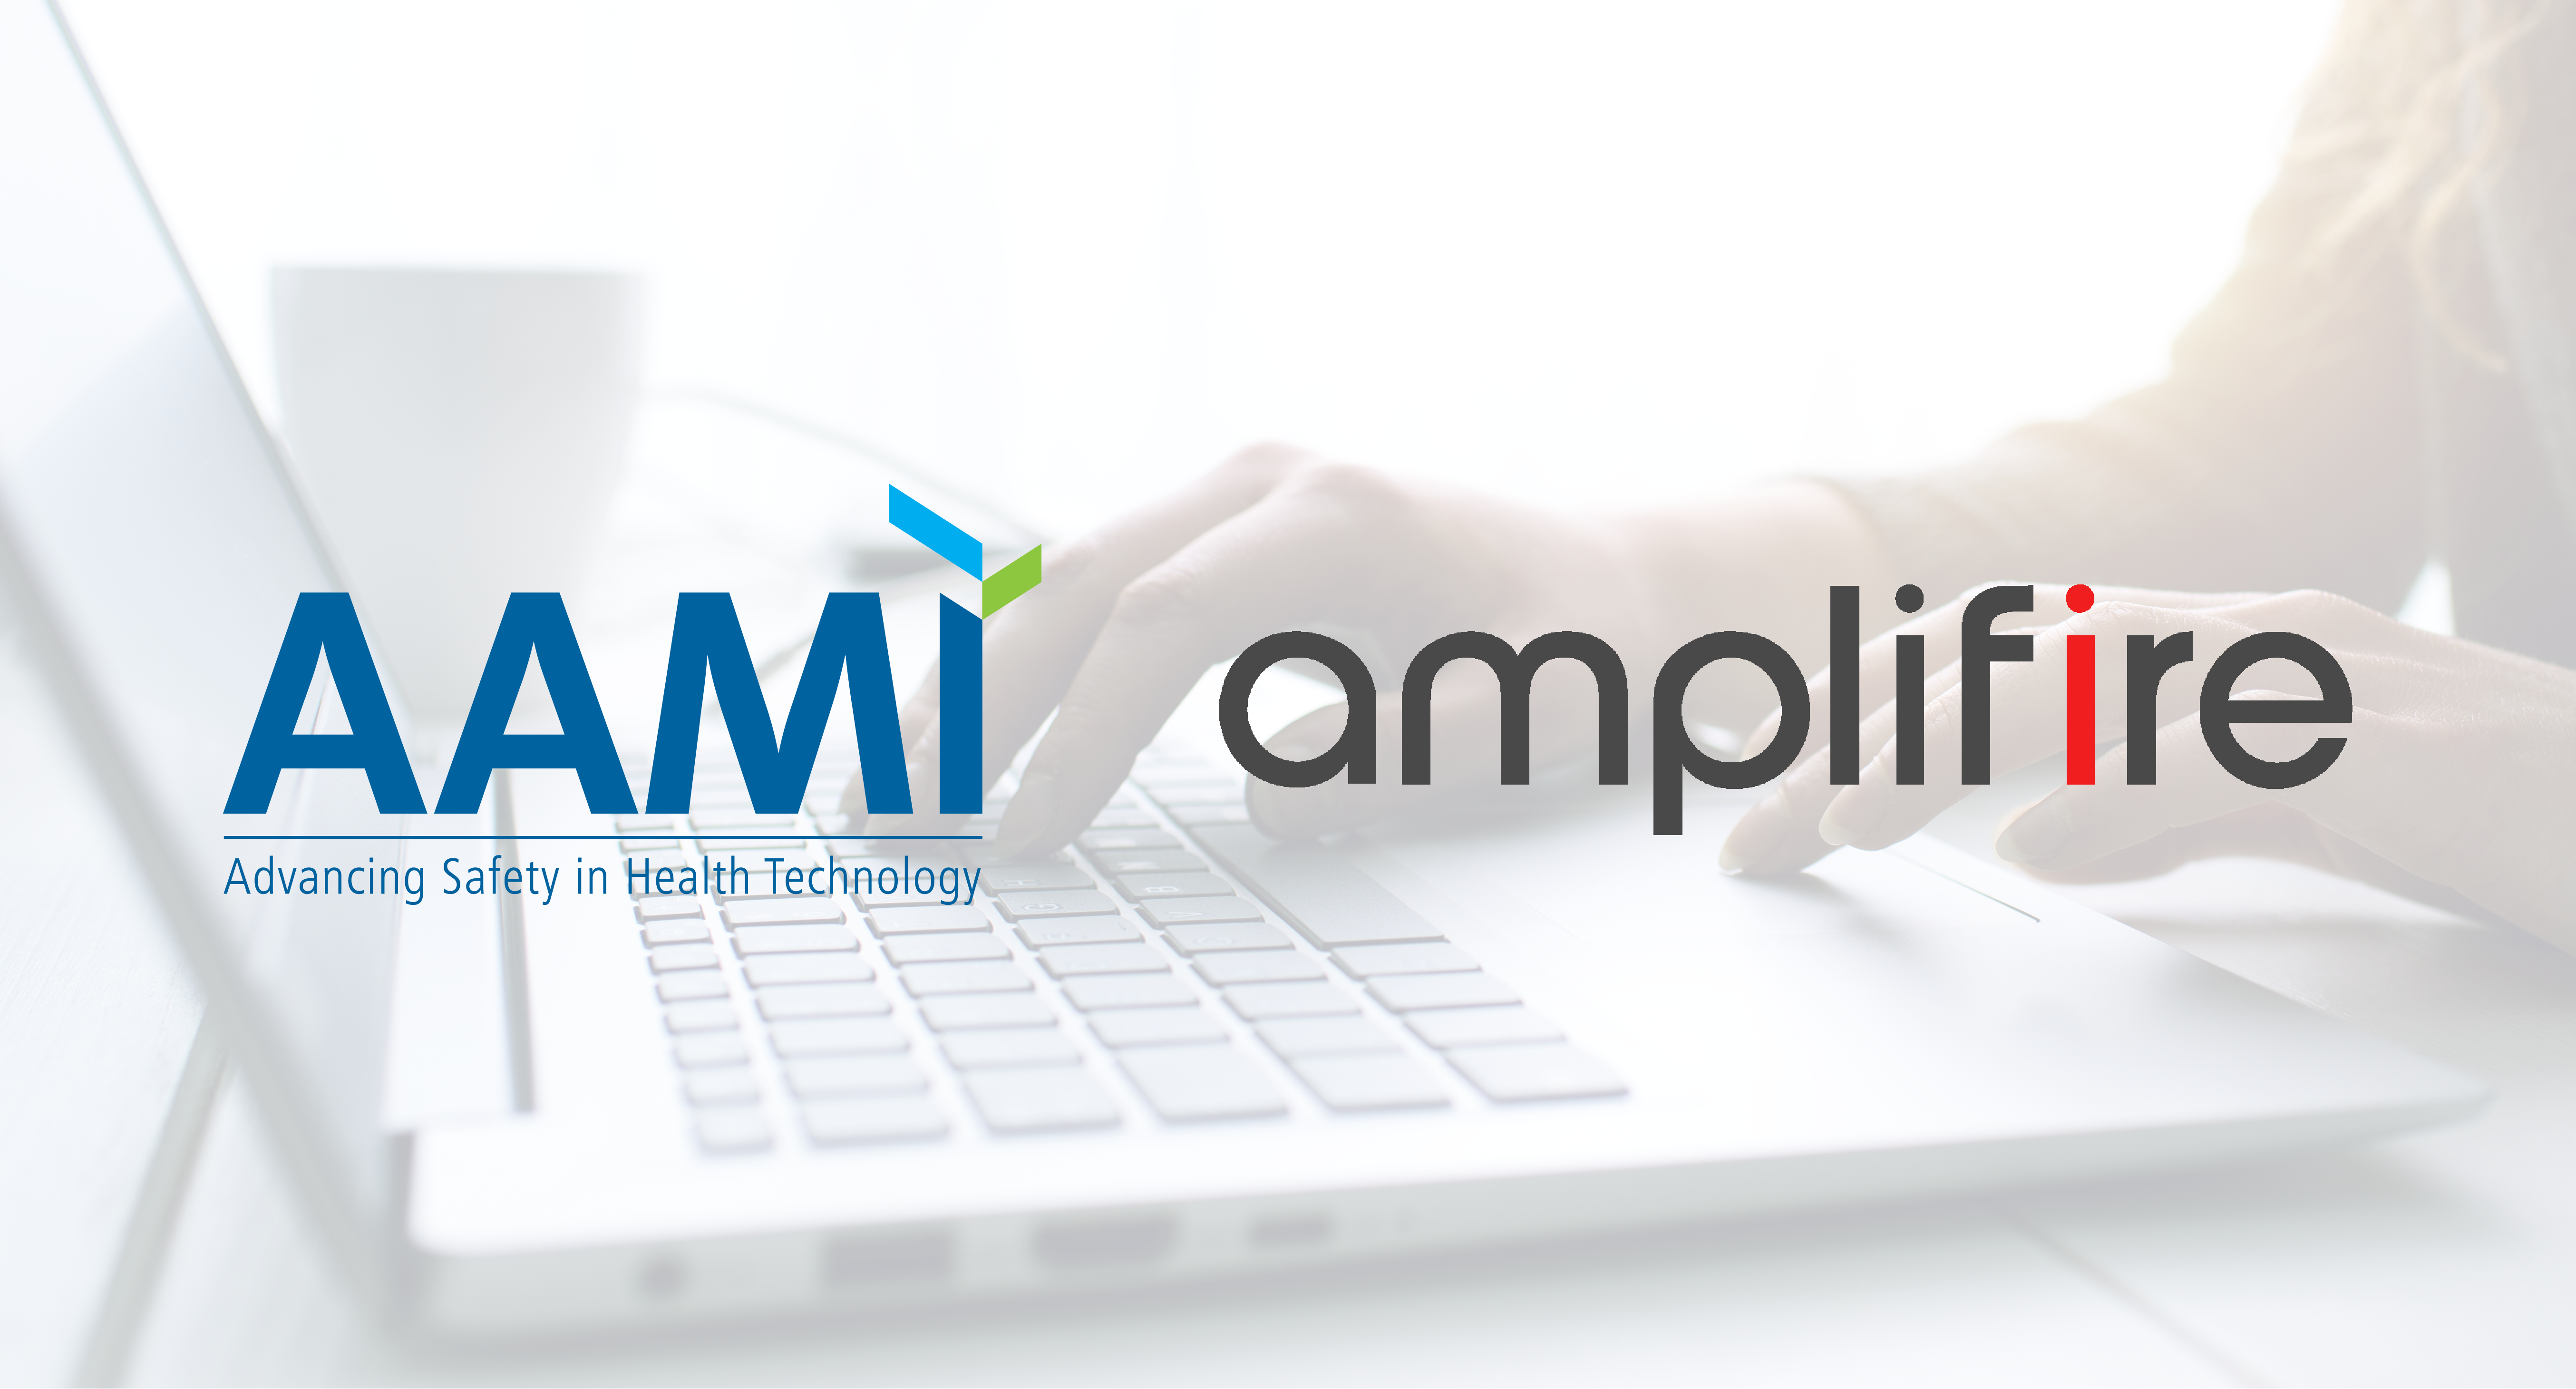 The Amplifire and AAMI logos side-by-side